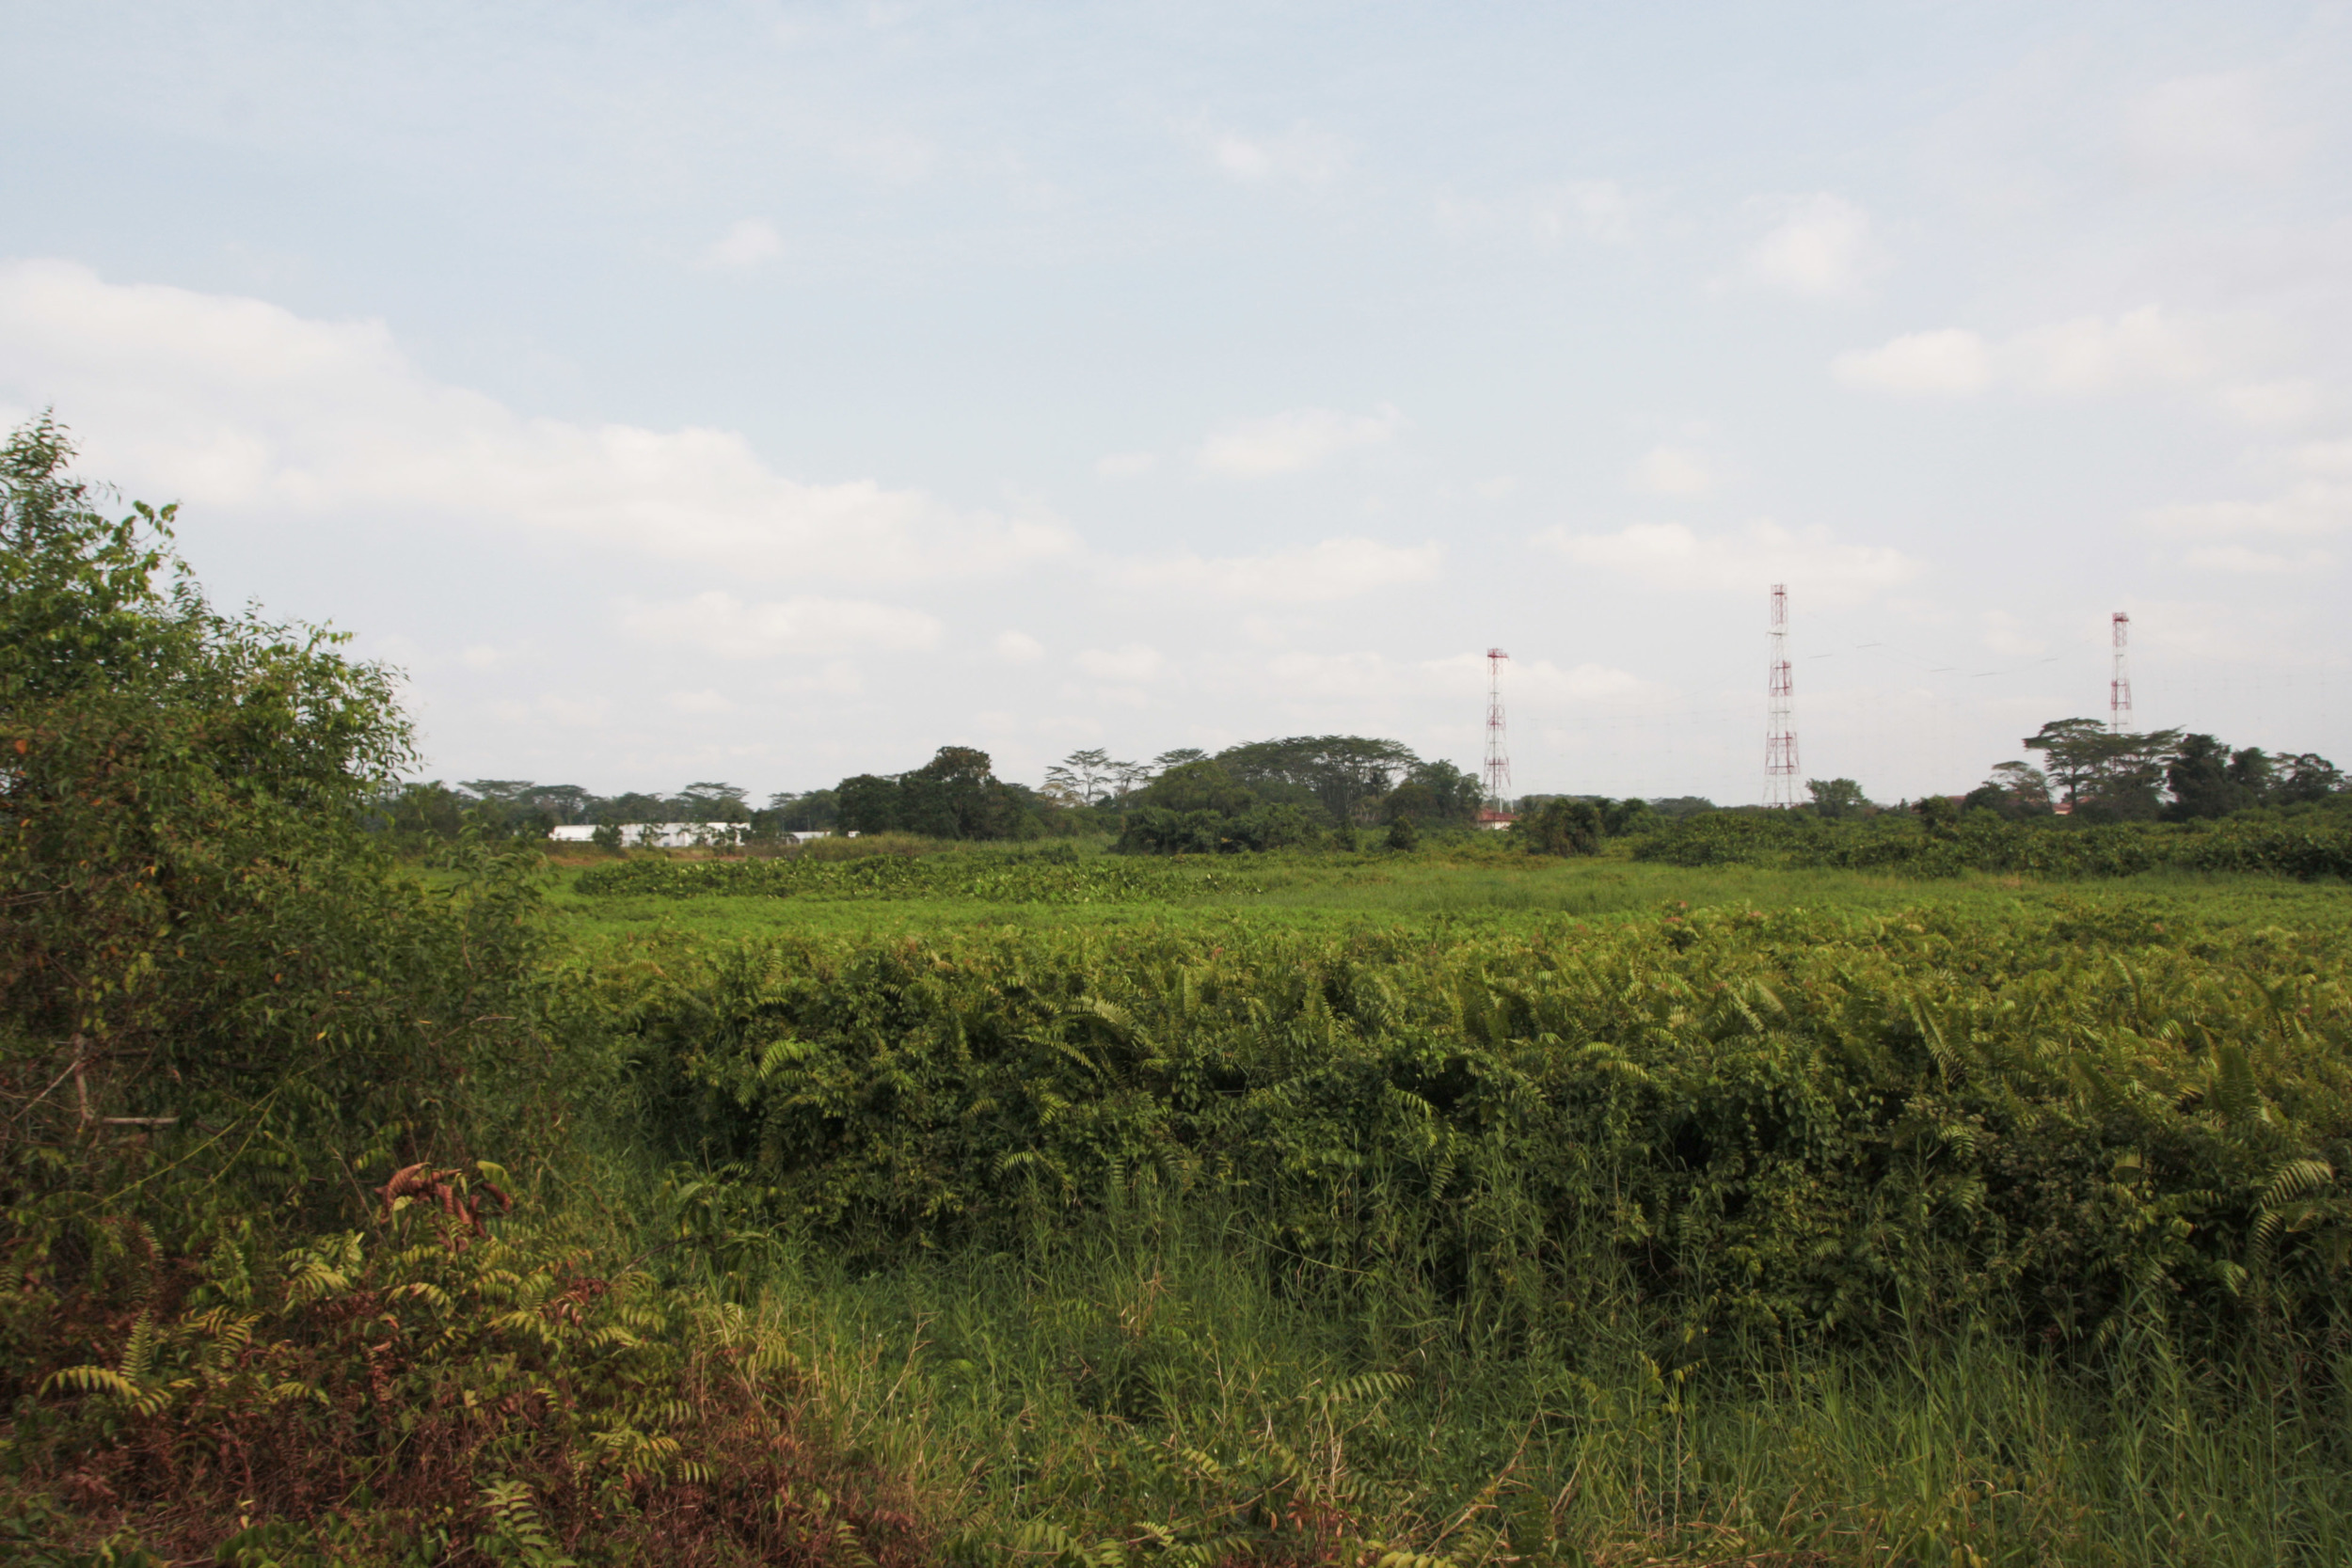 Main Marsh area at Kranji